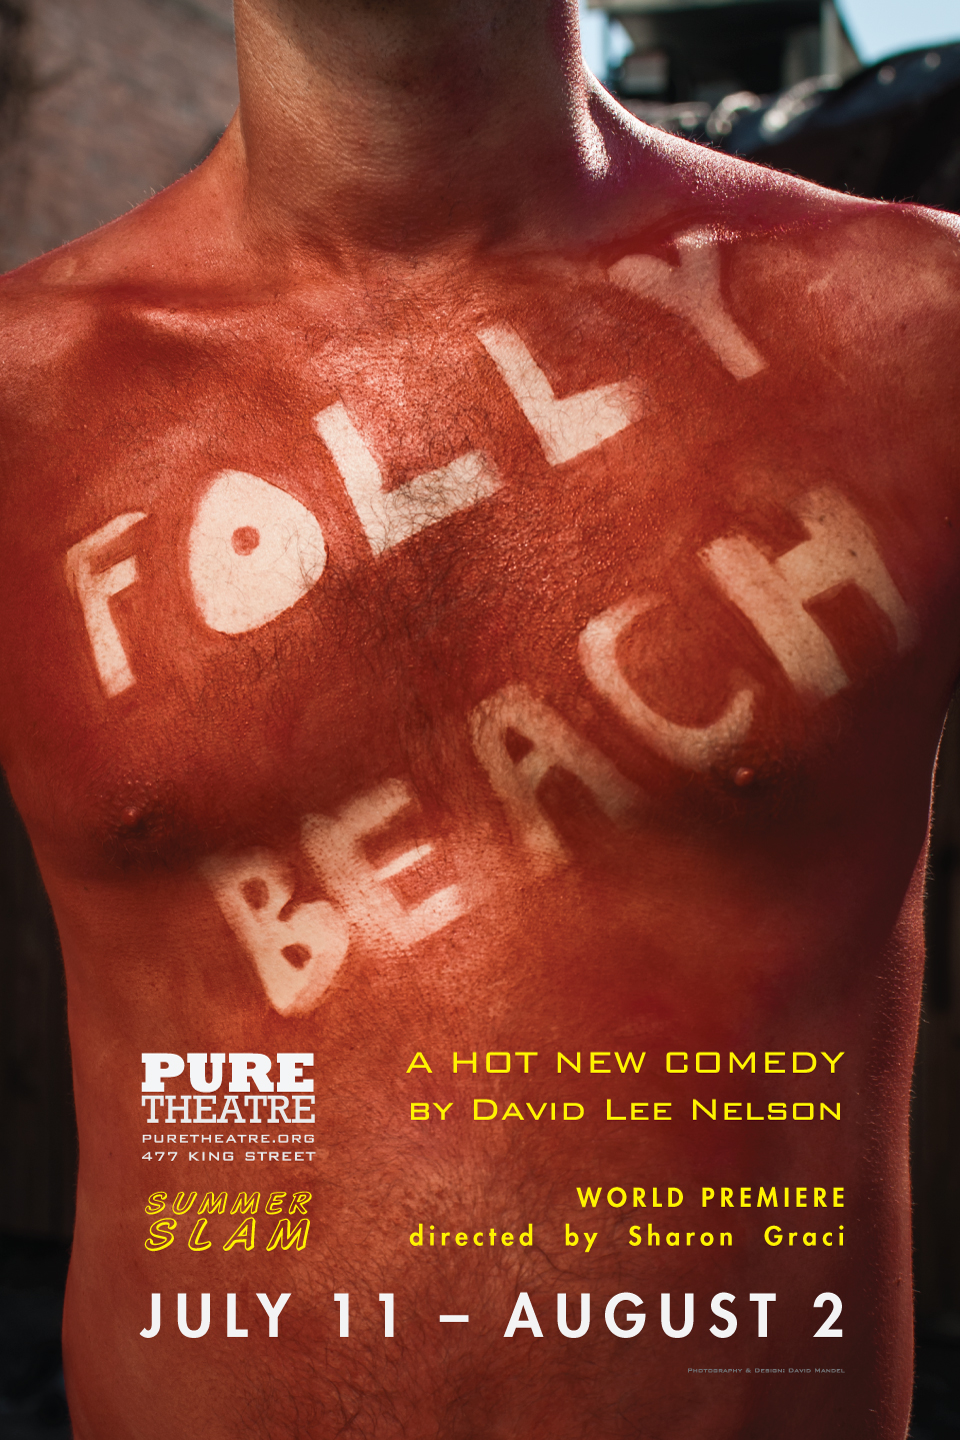 Folly Beach by David Lee Nelson at PURE Theatre